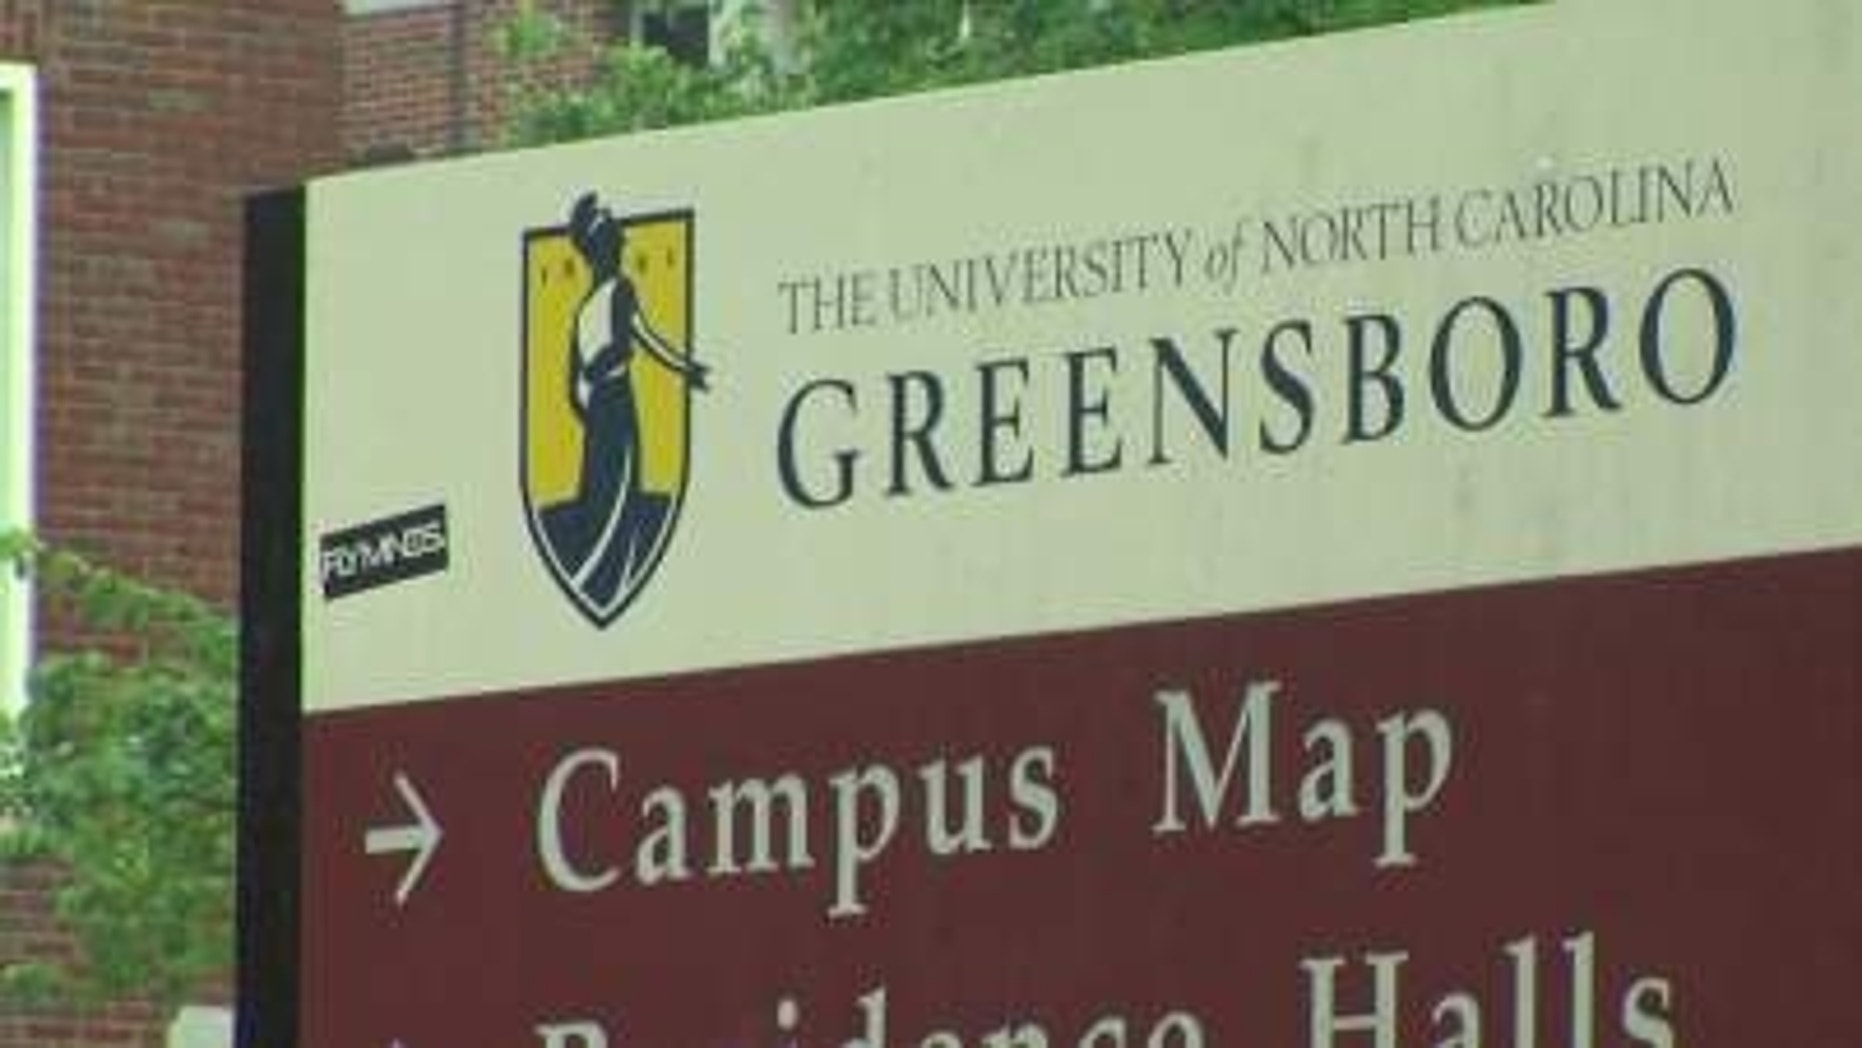 Greensboro College Campus Map.North Carolina Student Wins Recognition Of College Christian Group